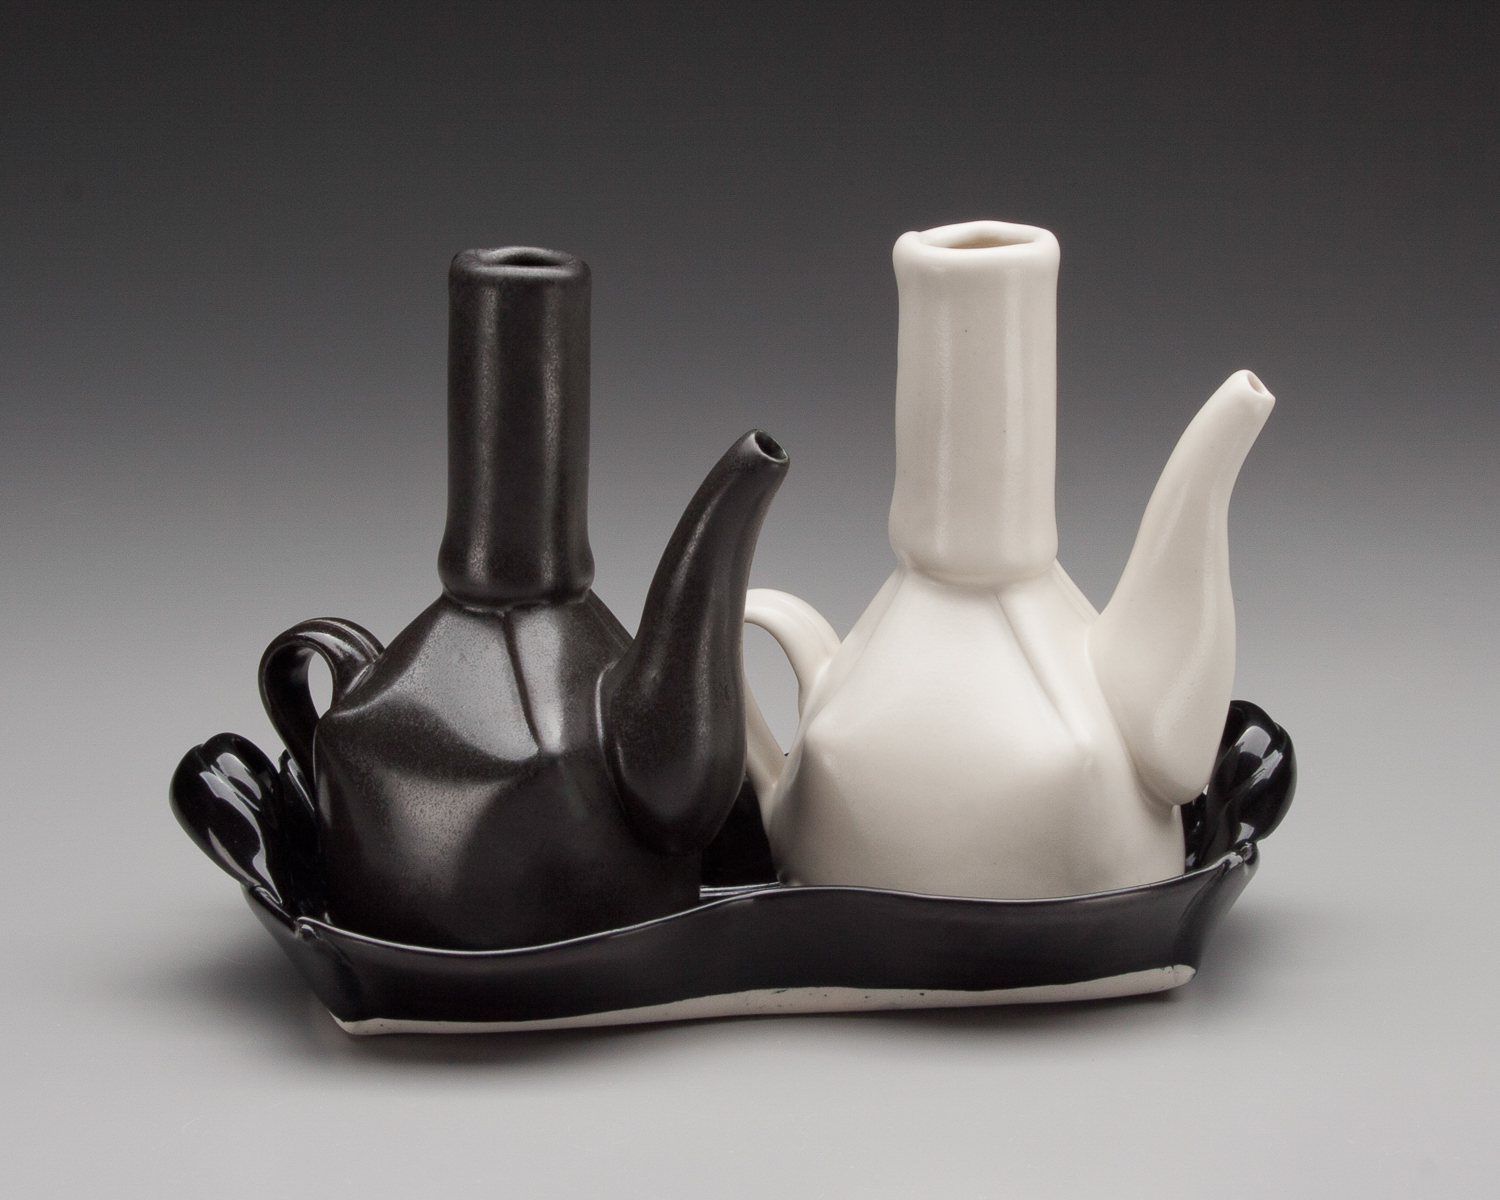 White and Black Ware